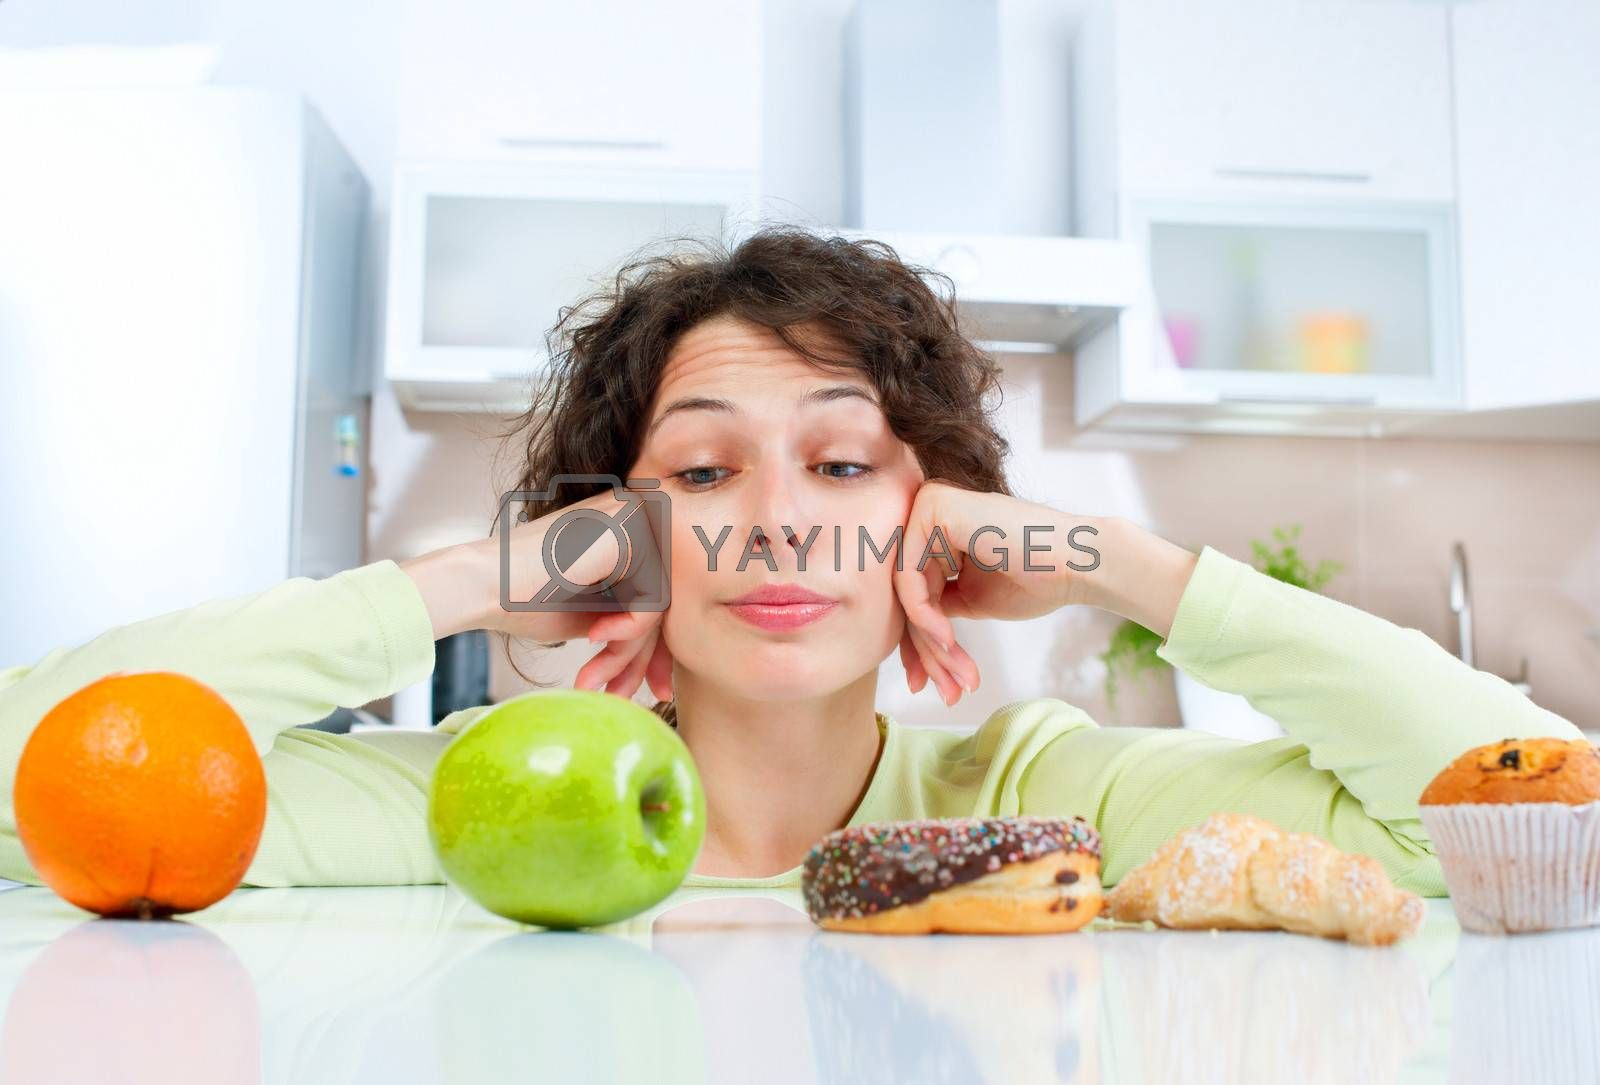 Dieting concept. Young Woman choosing between Fruits and Sweets by SubbotinaA